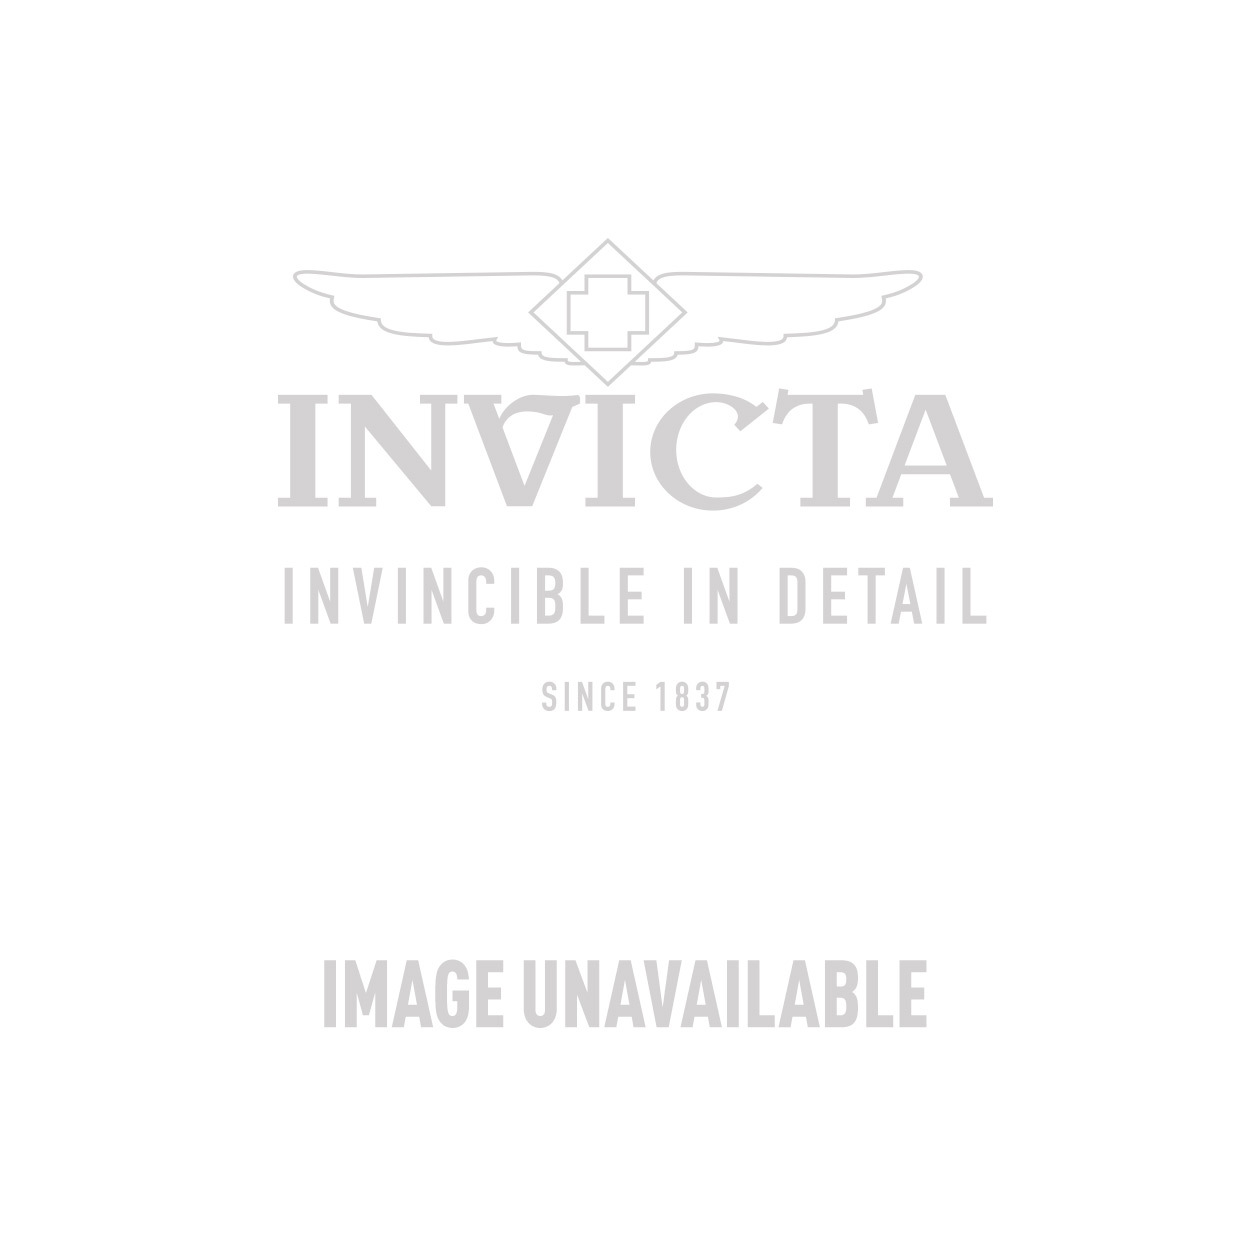 Invicta Specialty Quartz Watch - Rose Gold, Stainless Steel case with Rose Gold tone Stainless Steel band - Model 13965